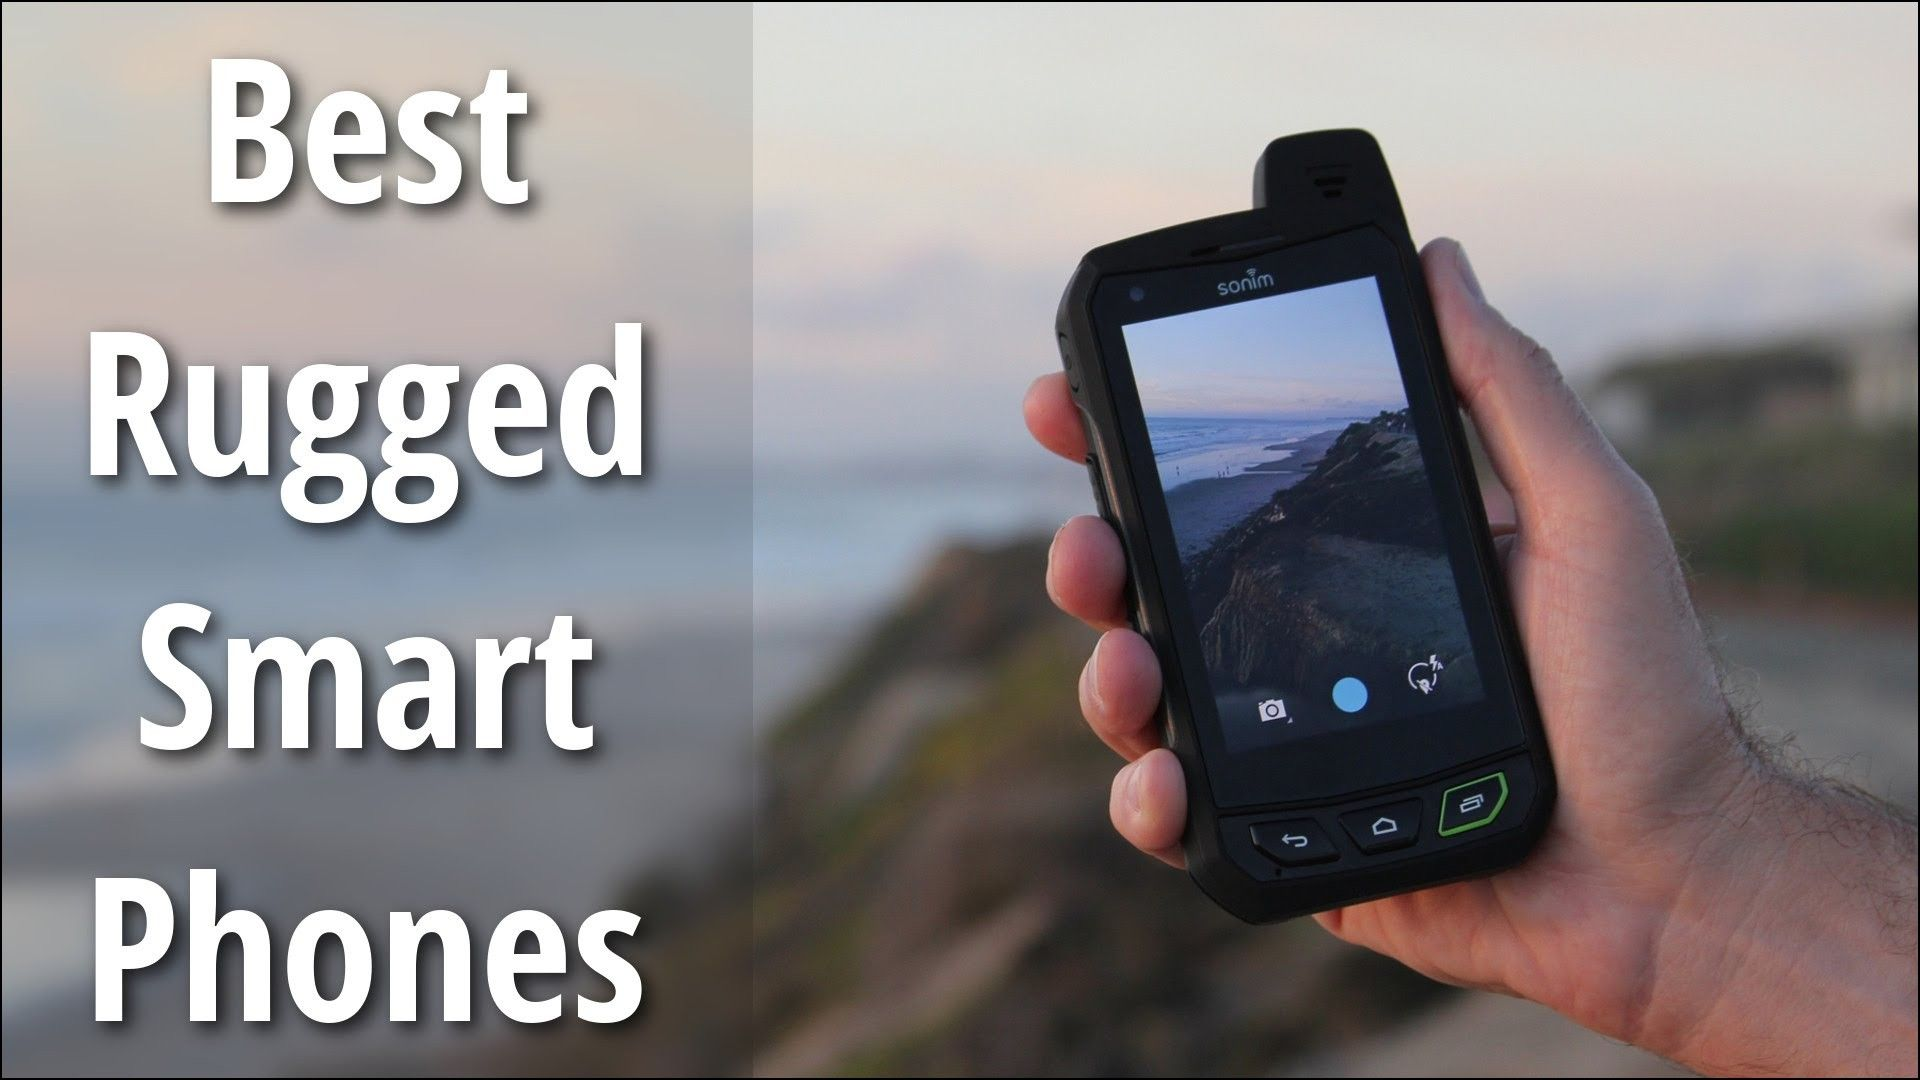 Smartphone The Best Rugged